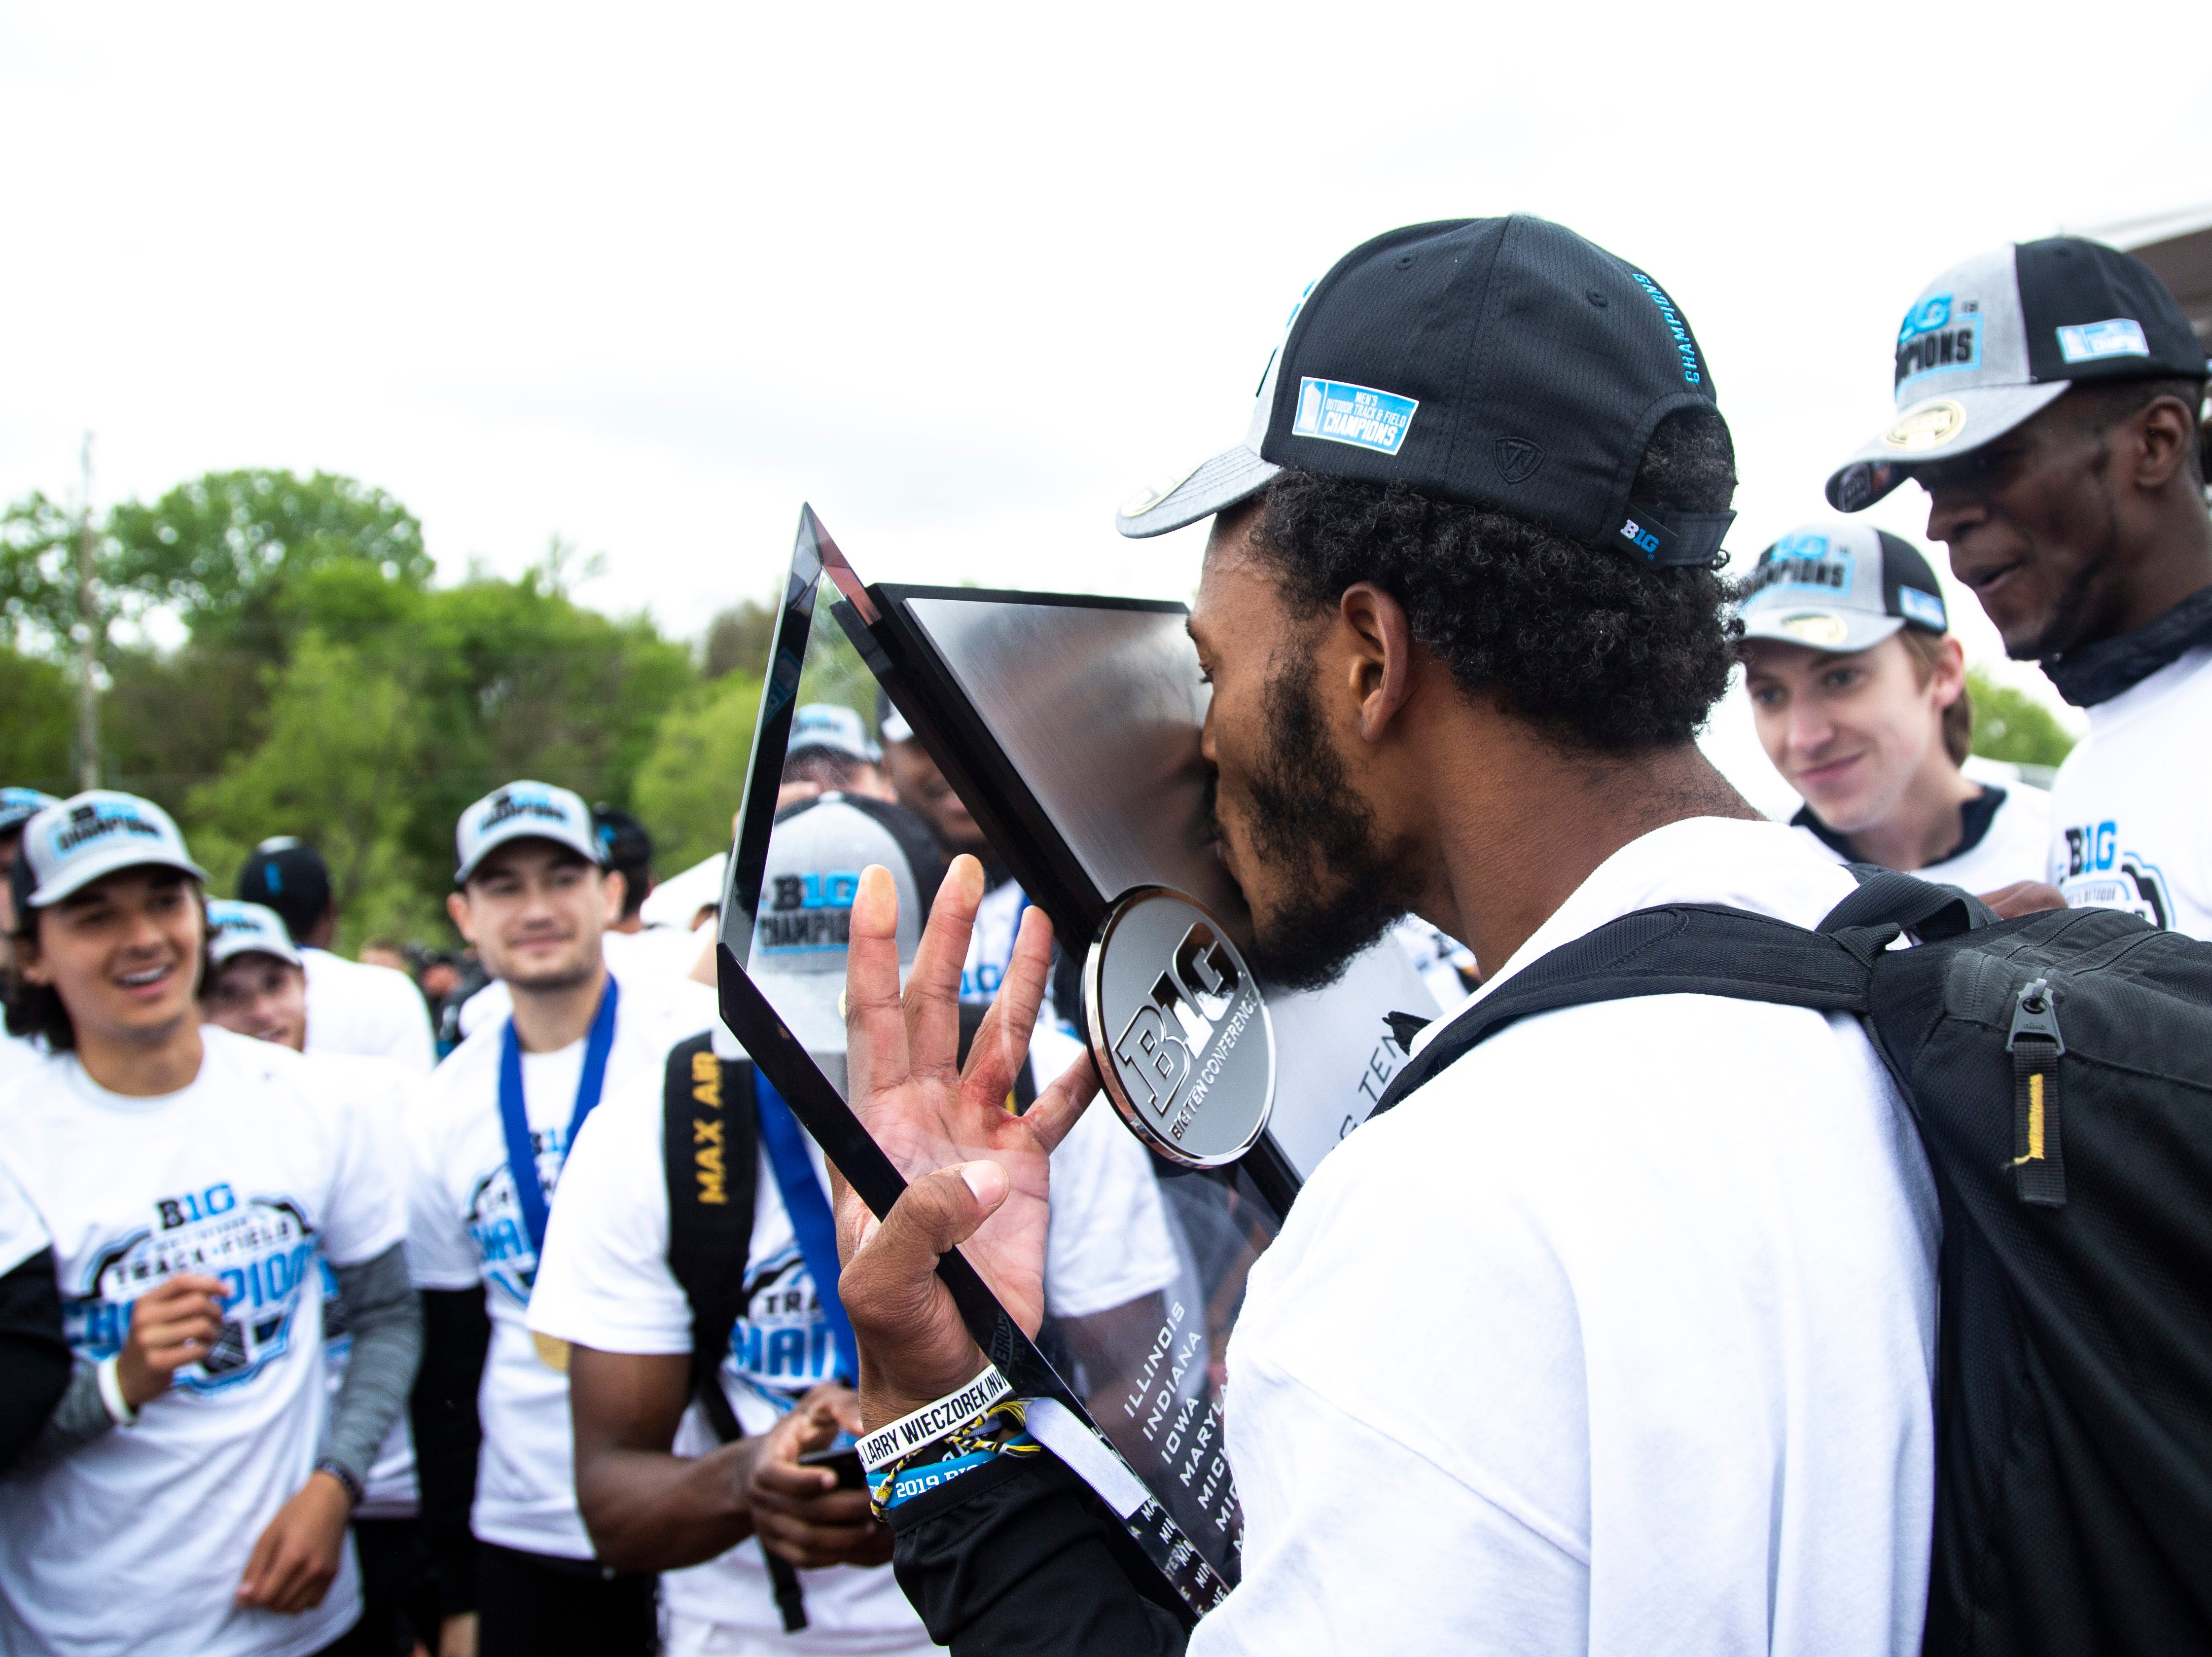 Iowa's Mar'yea Harris kisses the Big Ten Championship trophy during the final day of Big Ten track and field outdoor championships, Sunday, May 12, 2019, at Francis X. Cretzmeyer Track on the University of Iowa campus in Iowa City, Iowa.